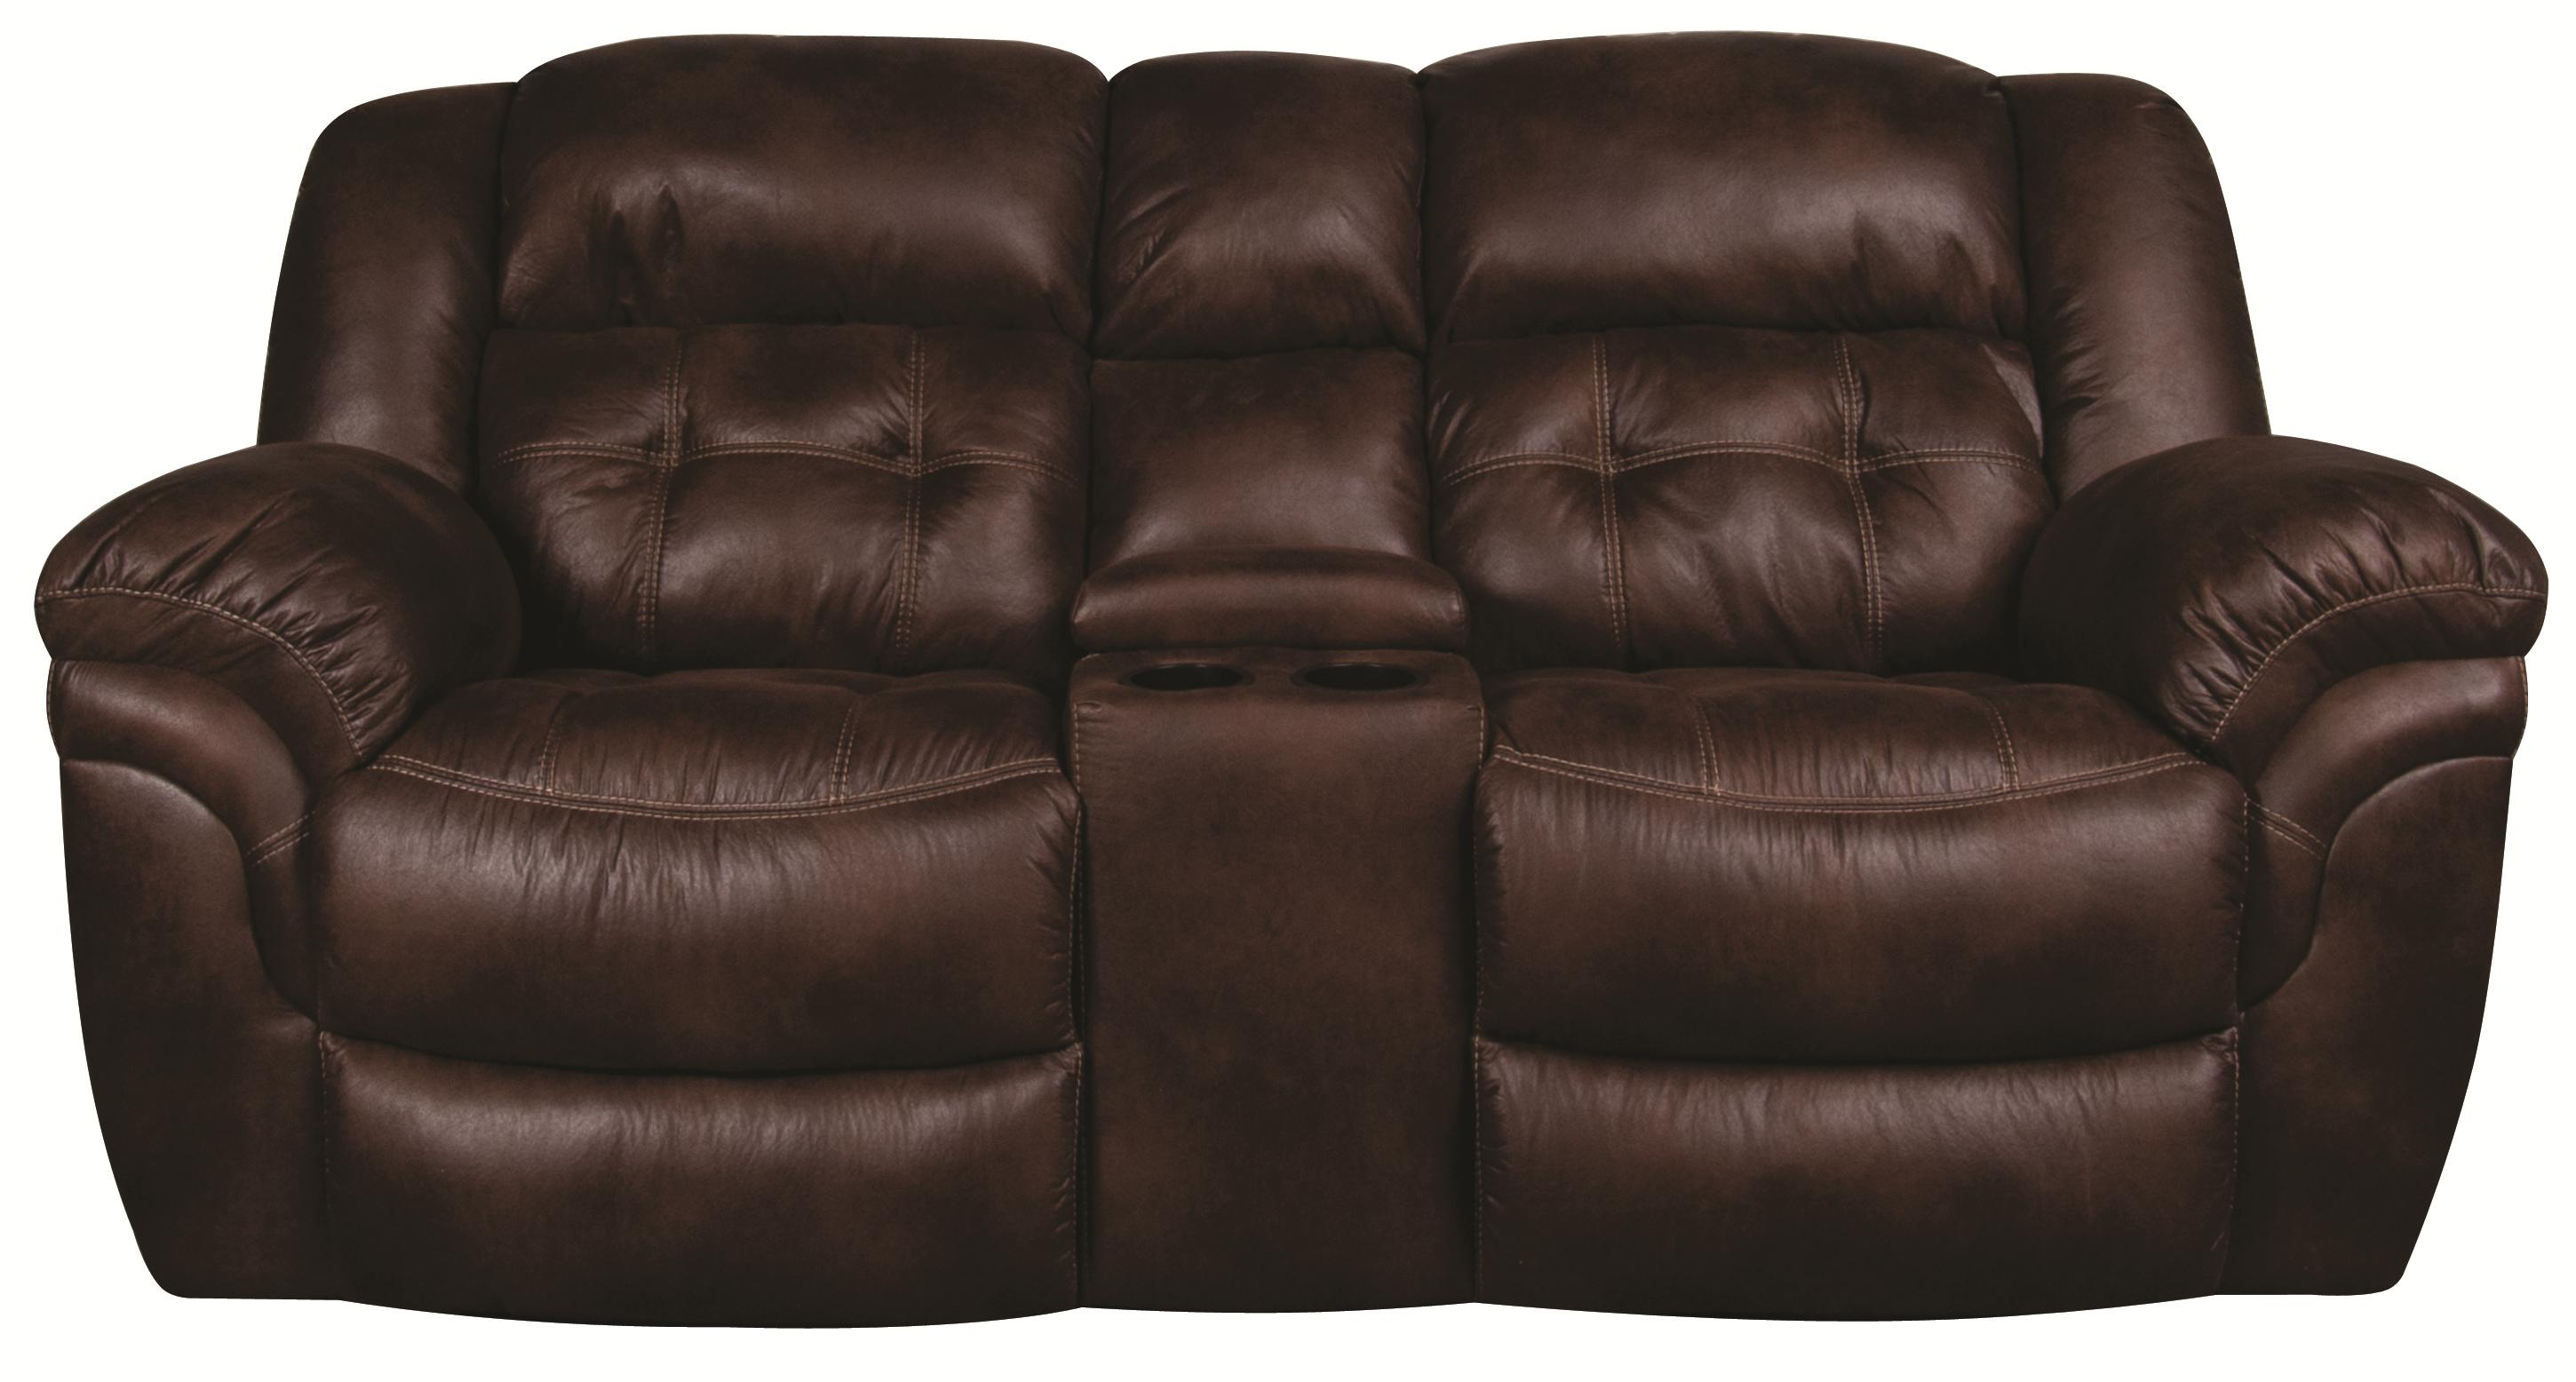 Elijah Elijah Reclining Loveseat with Console by HomeStretch at Morris Home